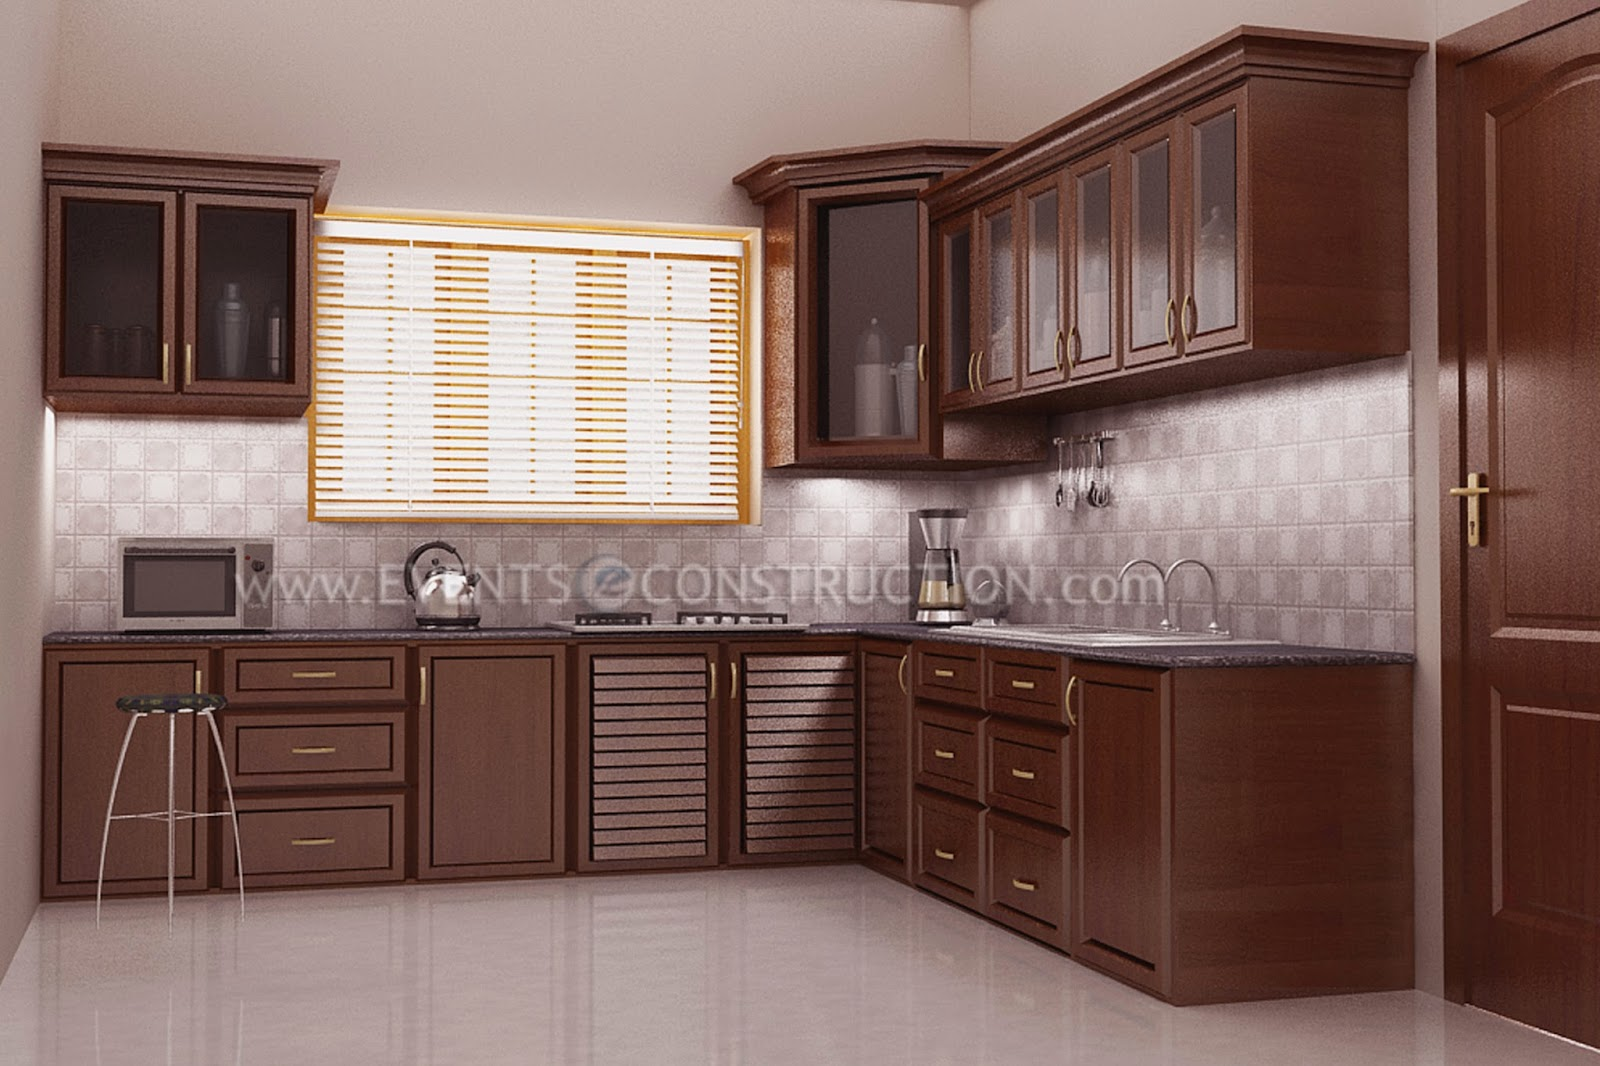 Evens construction pvt ltd kitchen design with wooden - Home interior design kitchen pictures ...